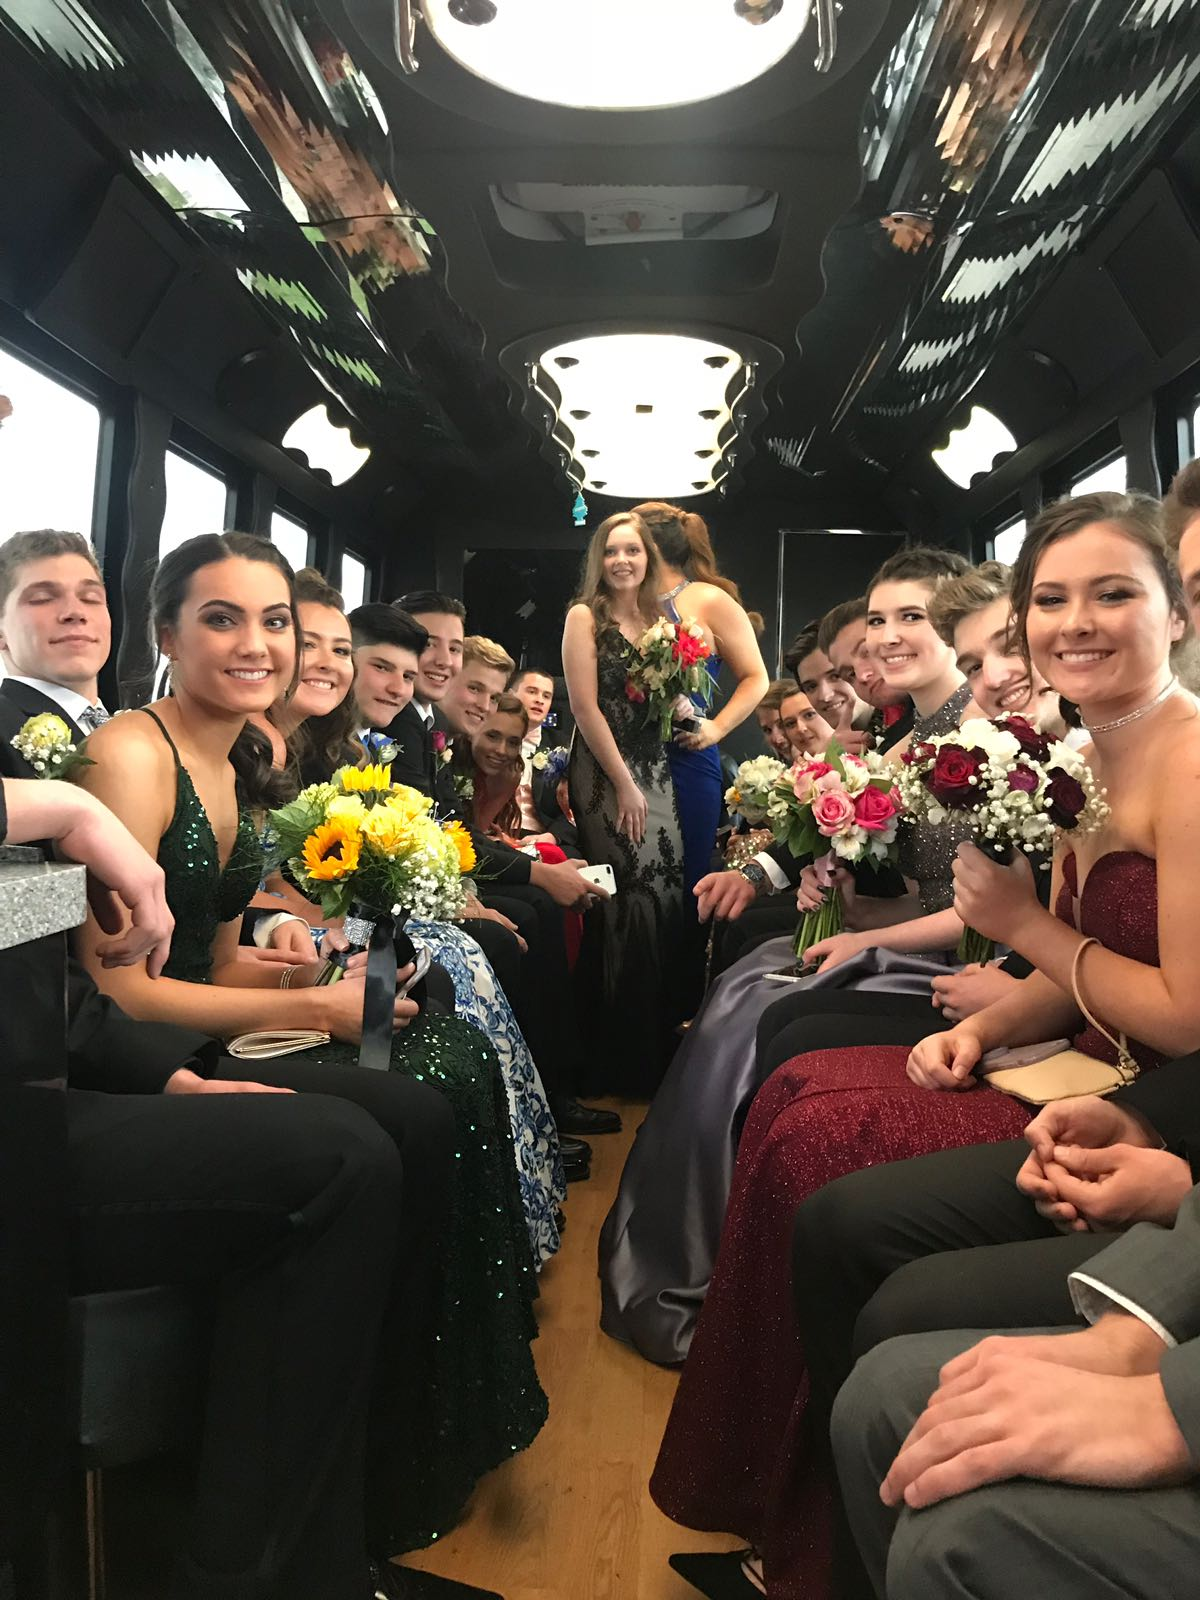 Limo Prom Prom Limo Services Limos For Prom Night Nj Party Buses For Prom Nj